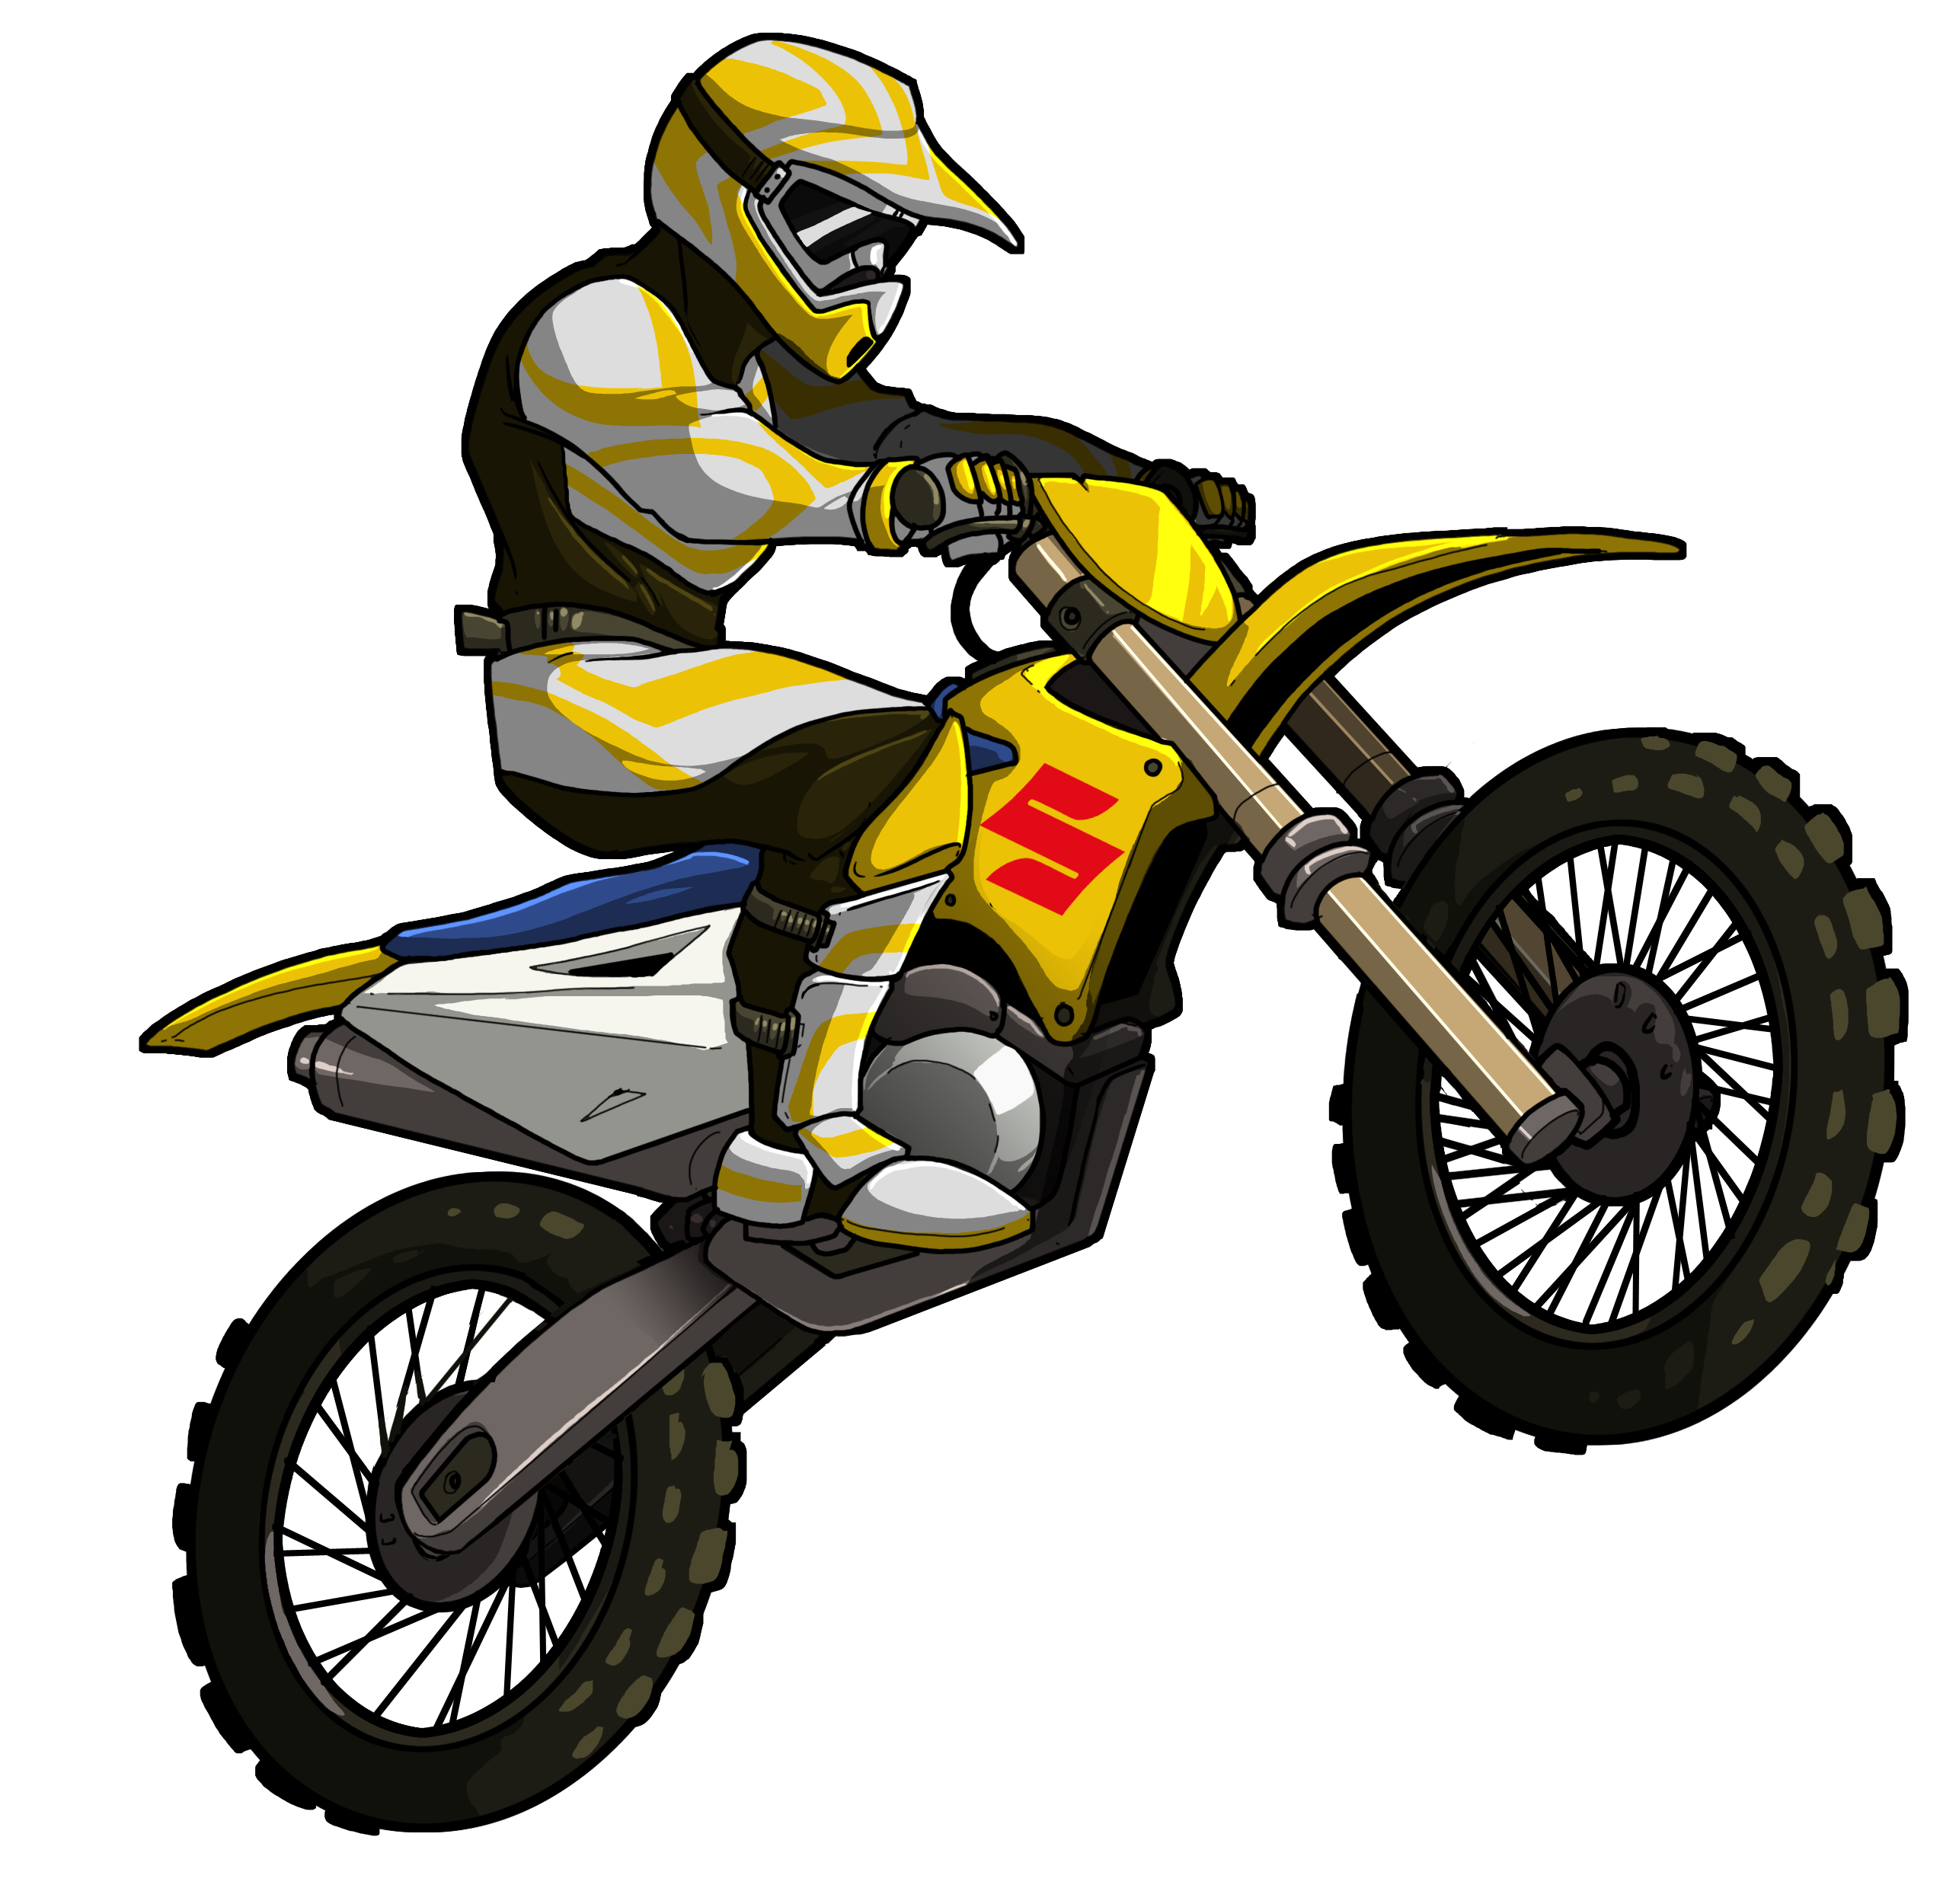 Motor cross clipart svg library download Motocross PNG Images Transparent Free Download | PNGMart.com svg library download